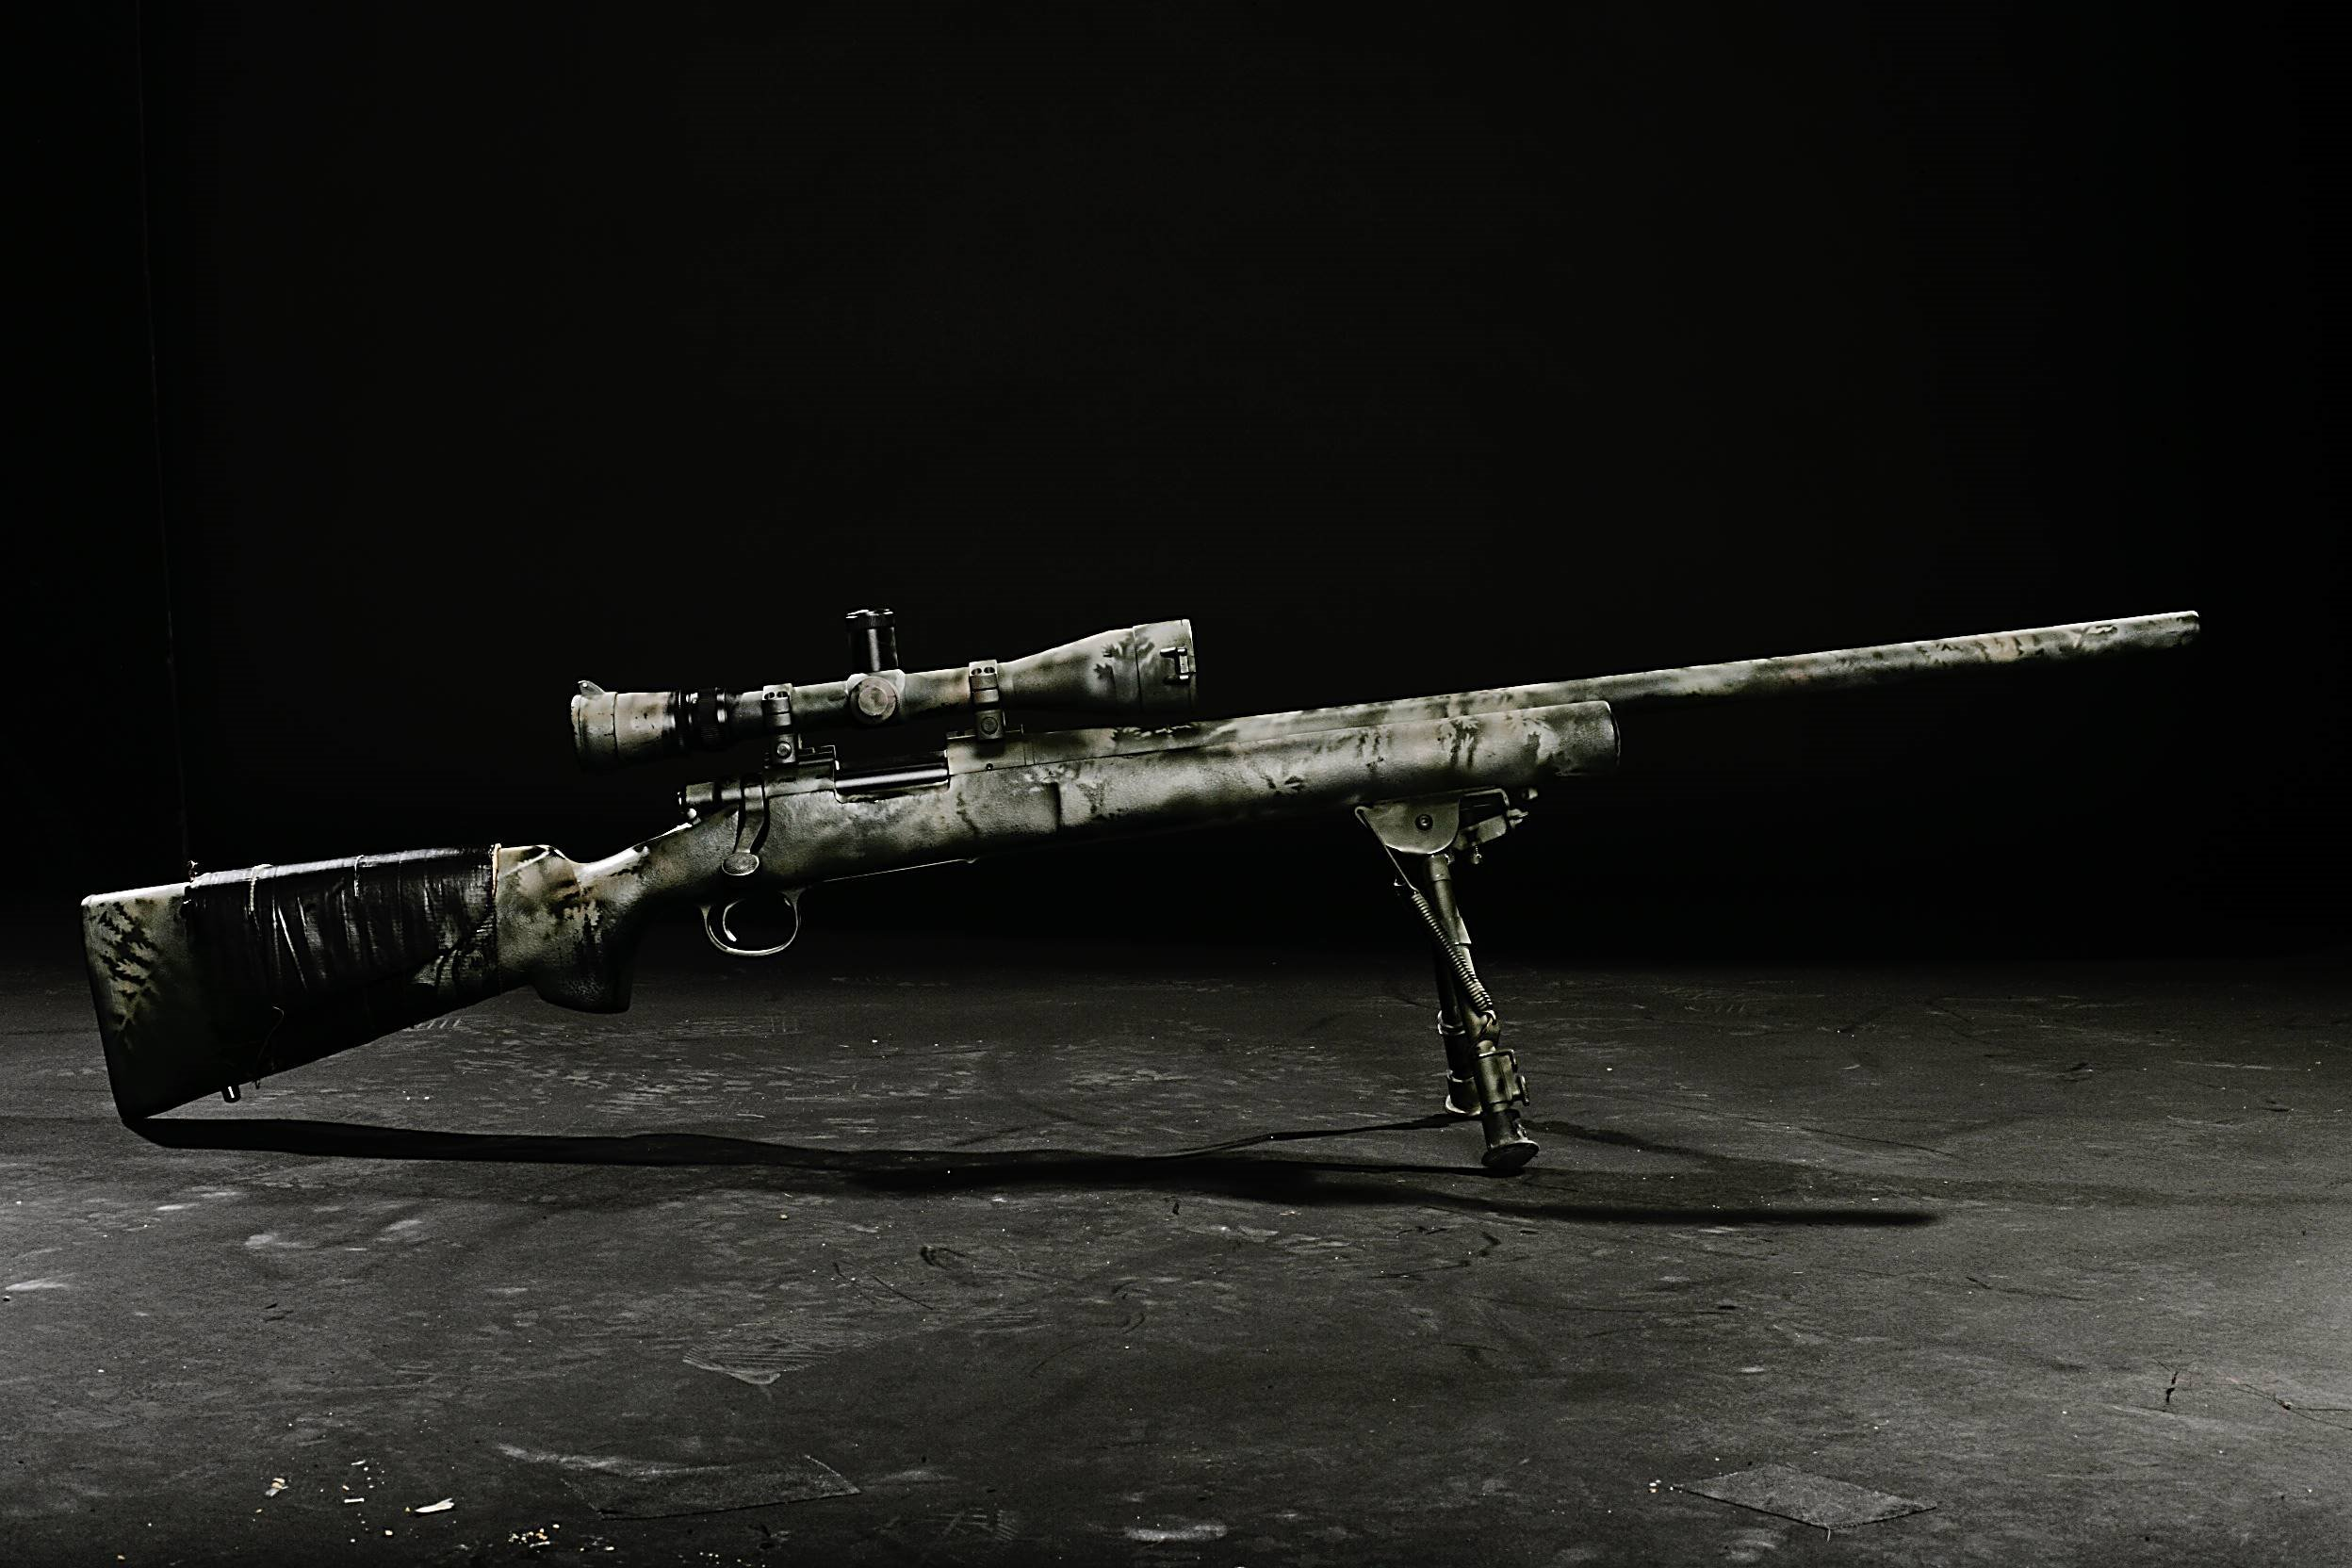 Download wallpaper sniper rifle with ACOG Scope download 2496x1664